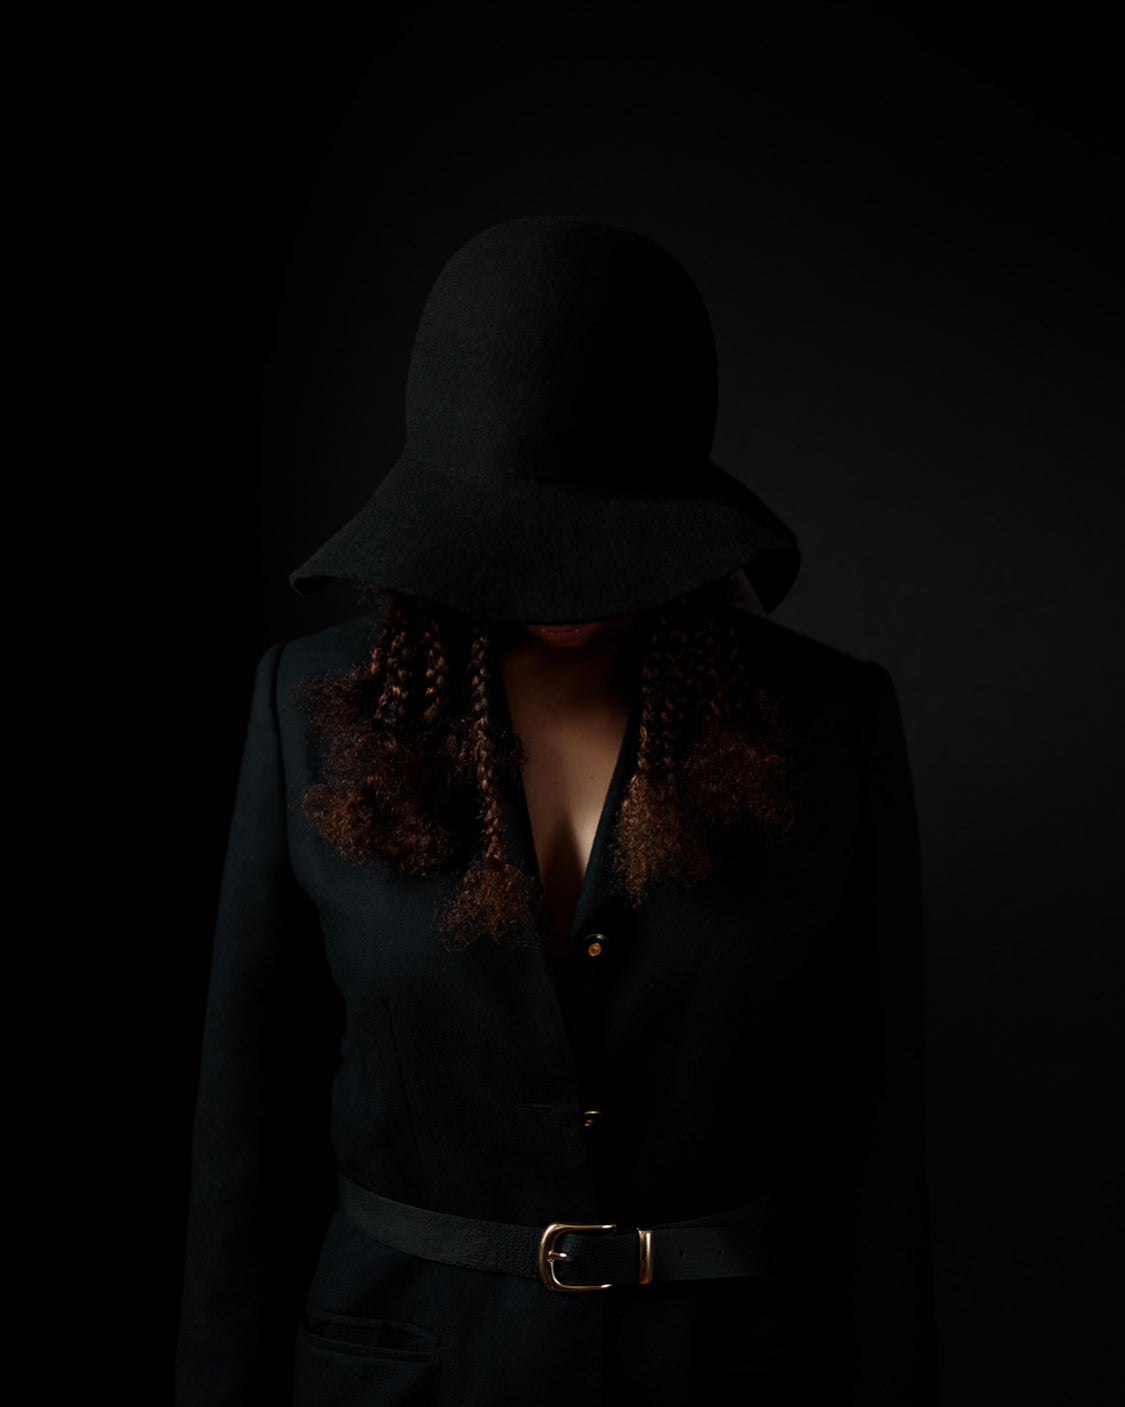 Editorial photo of the Camille Côté Cropped Hat on a model in the dark